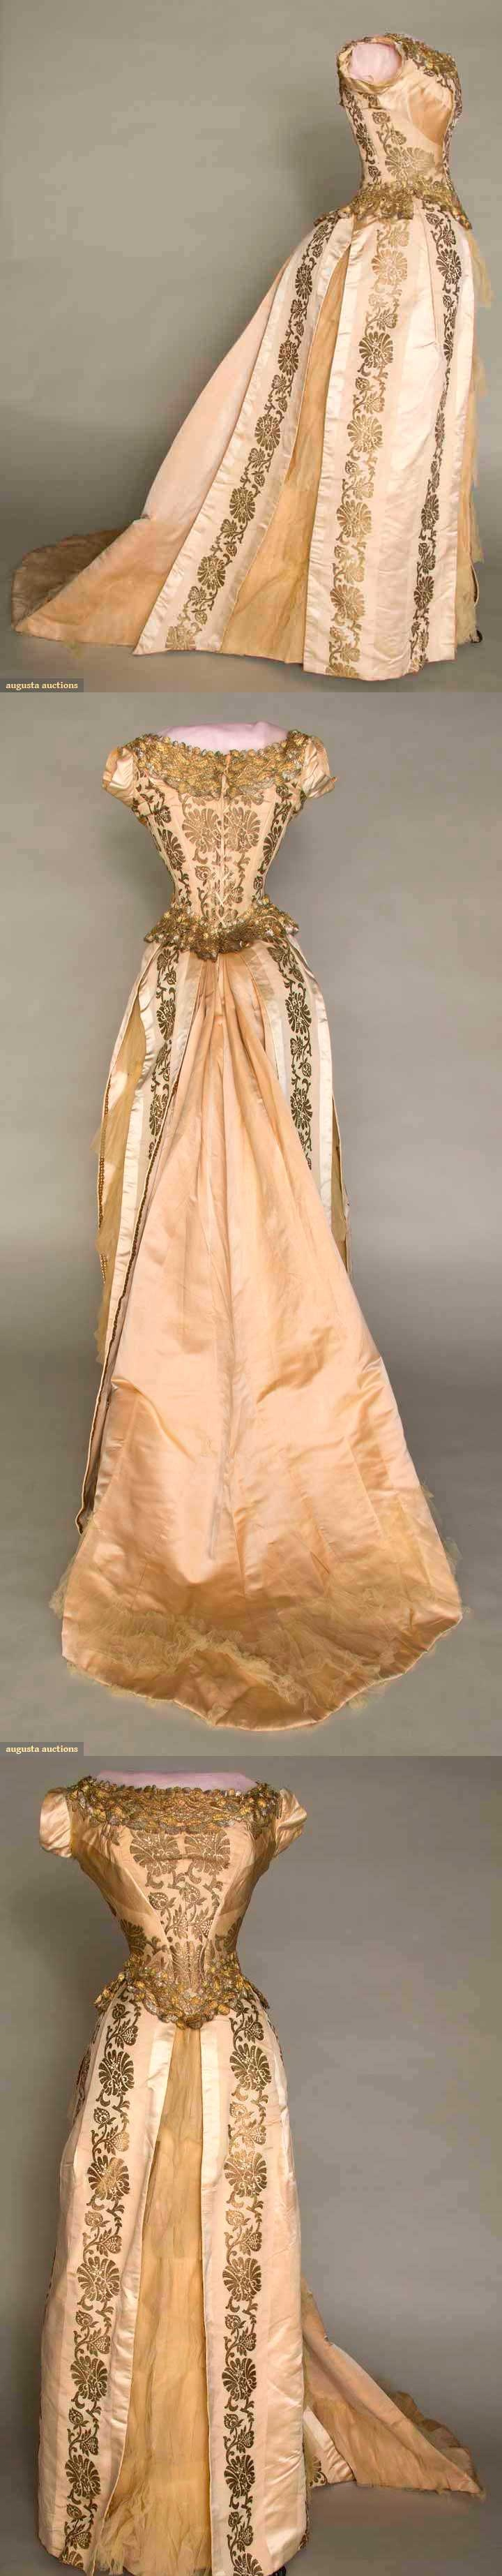 1880-1885 two-piece gold brocade ballgown with alternating faille and wide satin cream silk stripes. Heavy gold and silver metallic bobbin lace trim on back-lacing bodice, beige satin skirt train with tulle flounce. Skirt with three sections of pleated tulle between silk panels.